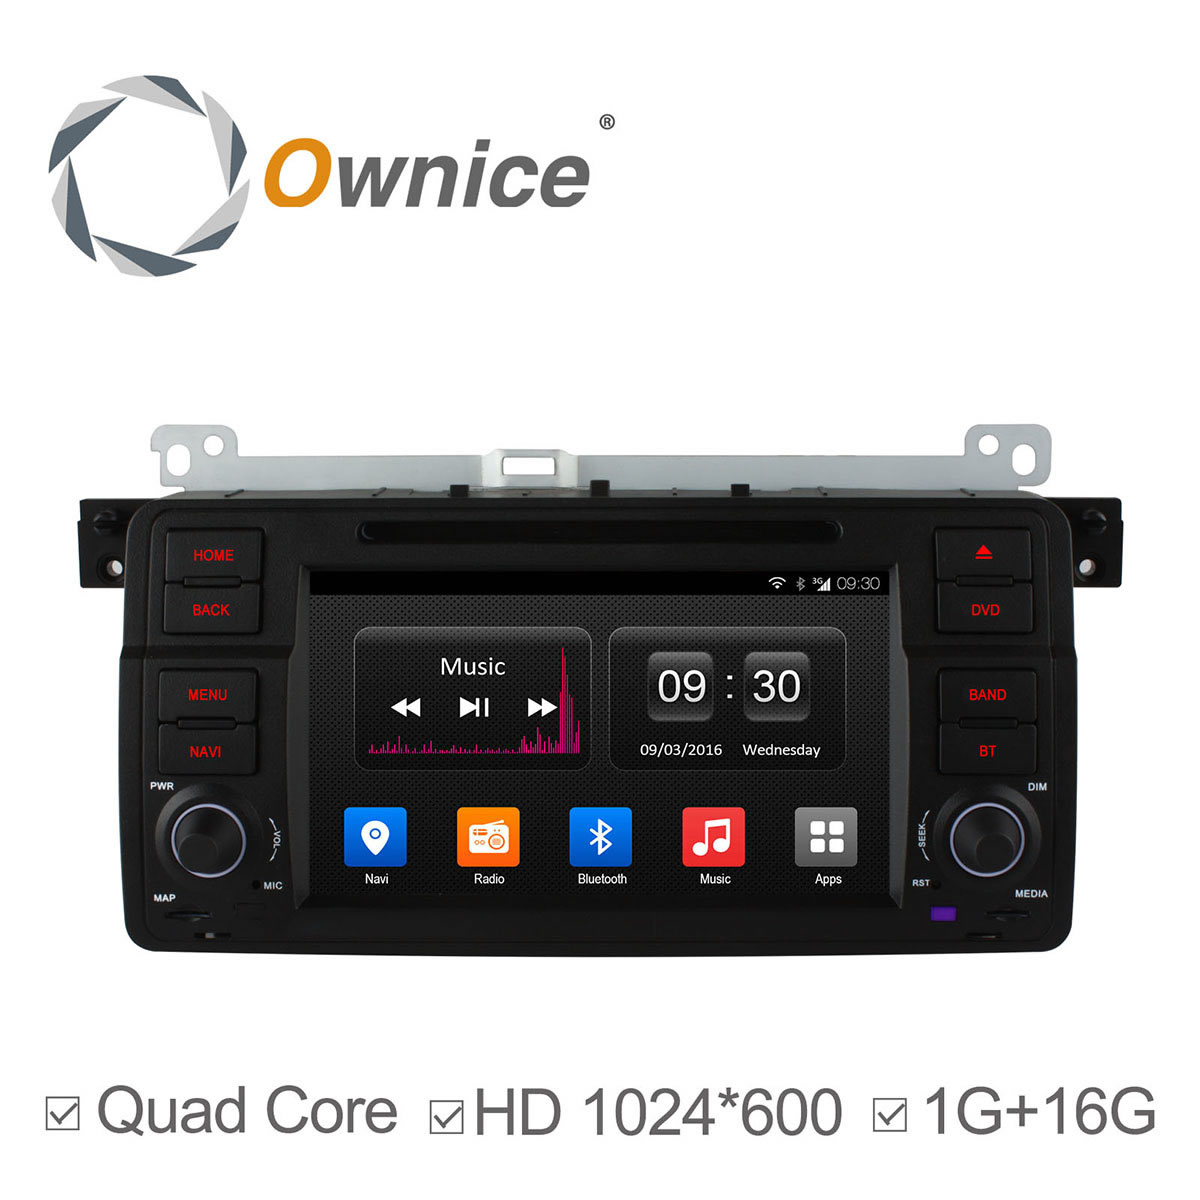 """Original UI 4 Core Android 4.4 7"""" 1024*600 Car DVD Player For BMW/E46/M3/MG/ZT/3 Series Rover 75 Support DAB+ GPS Radio DVR(China (Mainland))"""